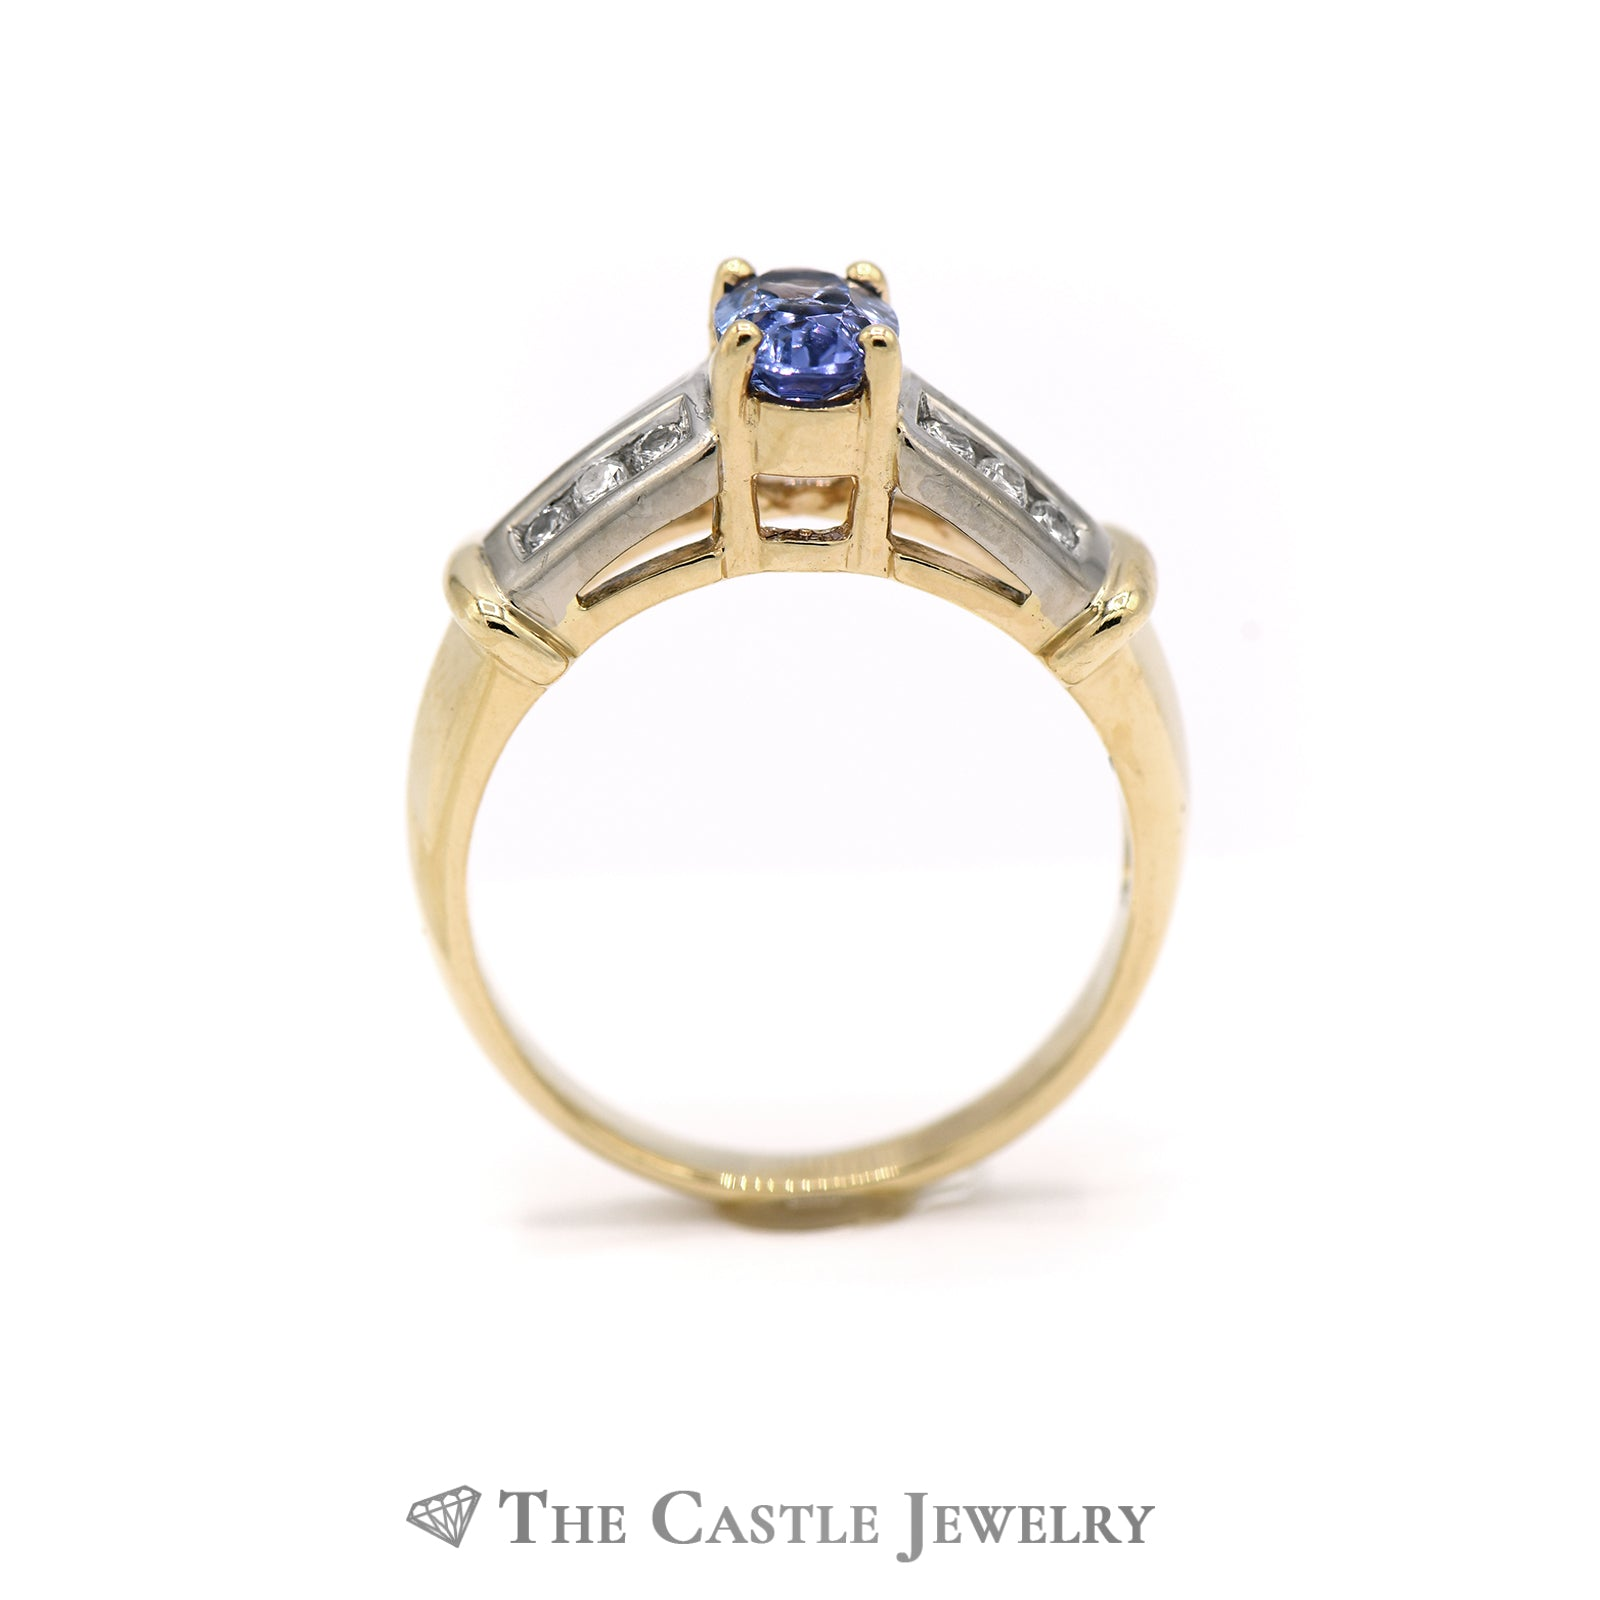 Gorgeous Oval Tanzanite Ring, Round Brilliant Cut Diamond Sides in Yellow Gold-1